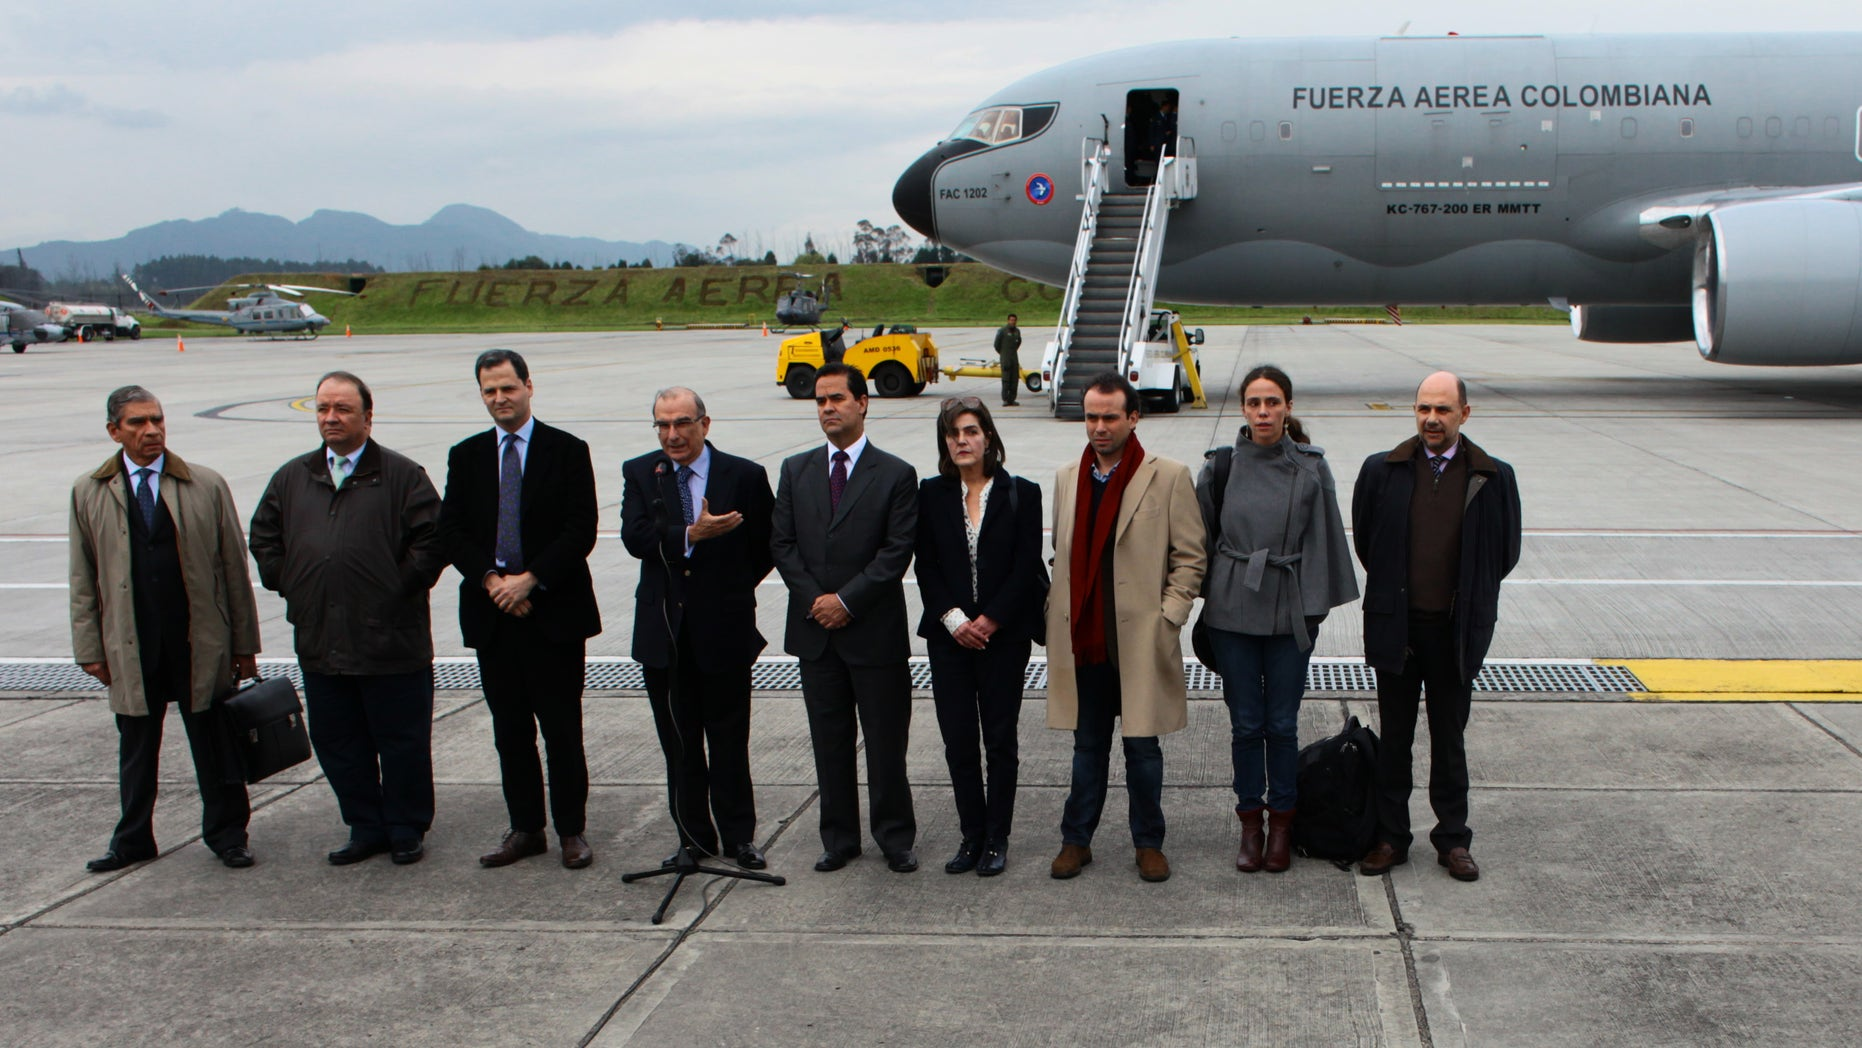 Oct. 16, 2012: Colombia's government team for the peace talks with Colombia's Revolutionary Armed Forces ( FARC ) pose for a photo before embarking on an Colombian Air Force plane to Oslo at the military airport in Bogota, Colombia.